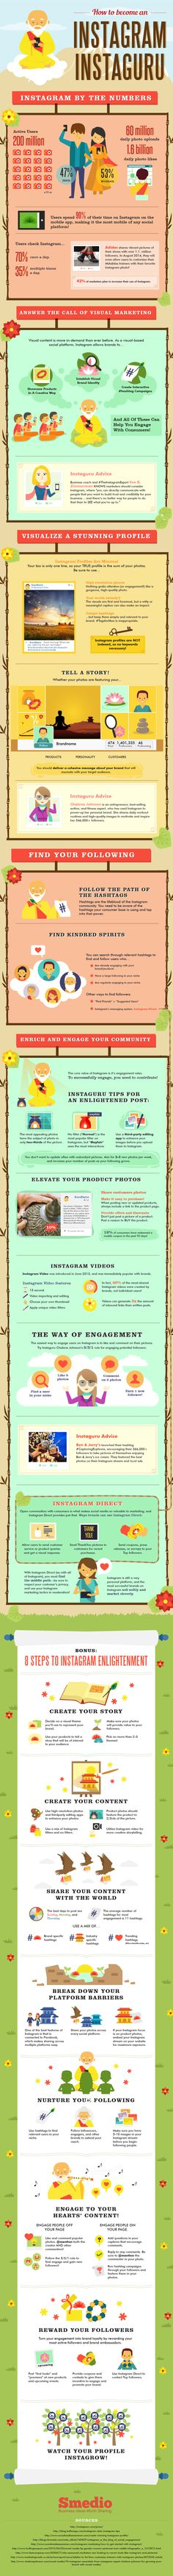 How to Become an #In